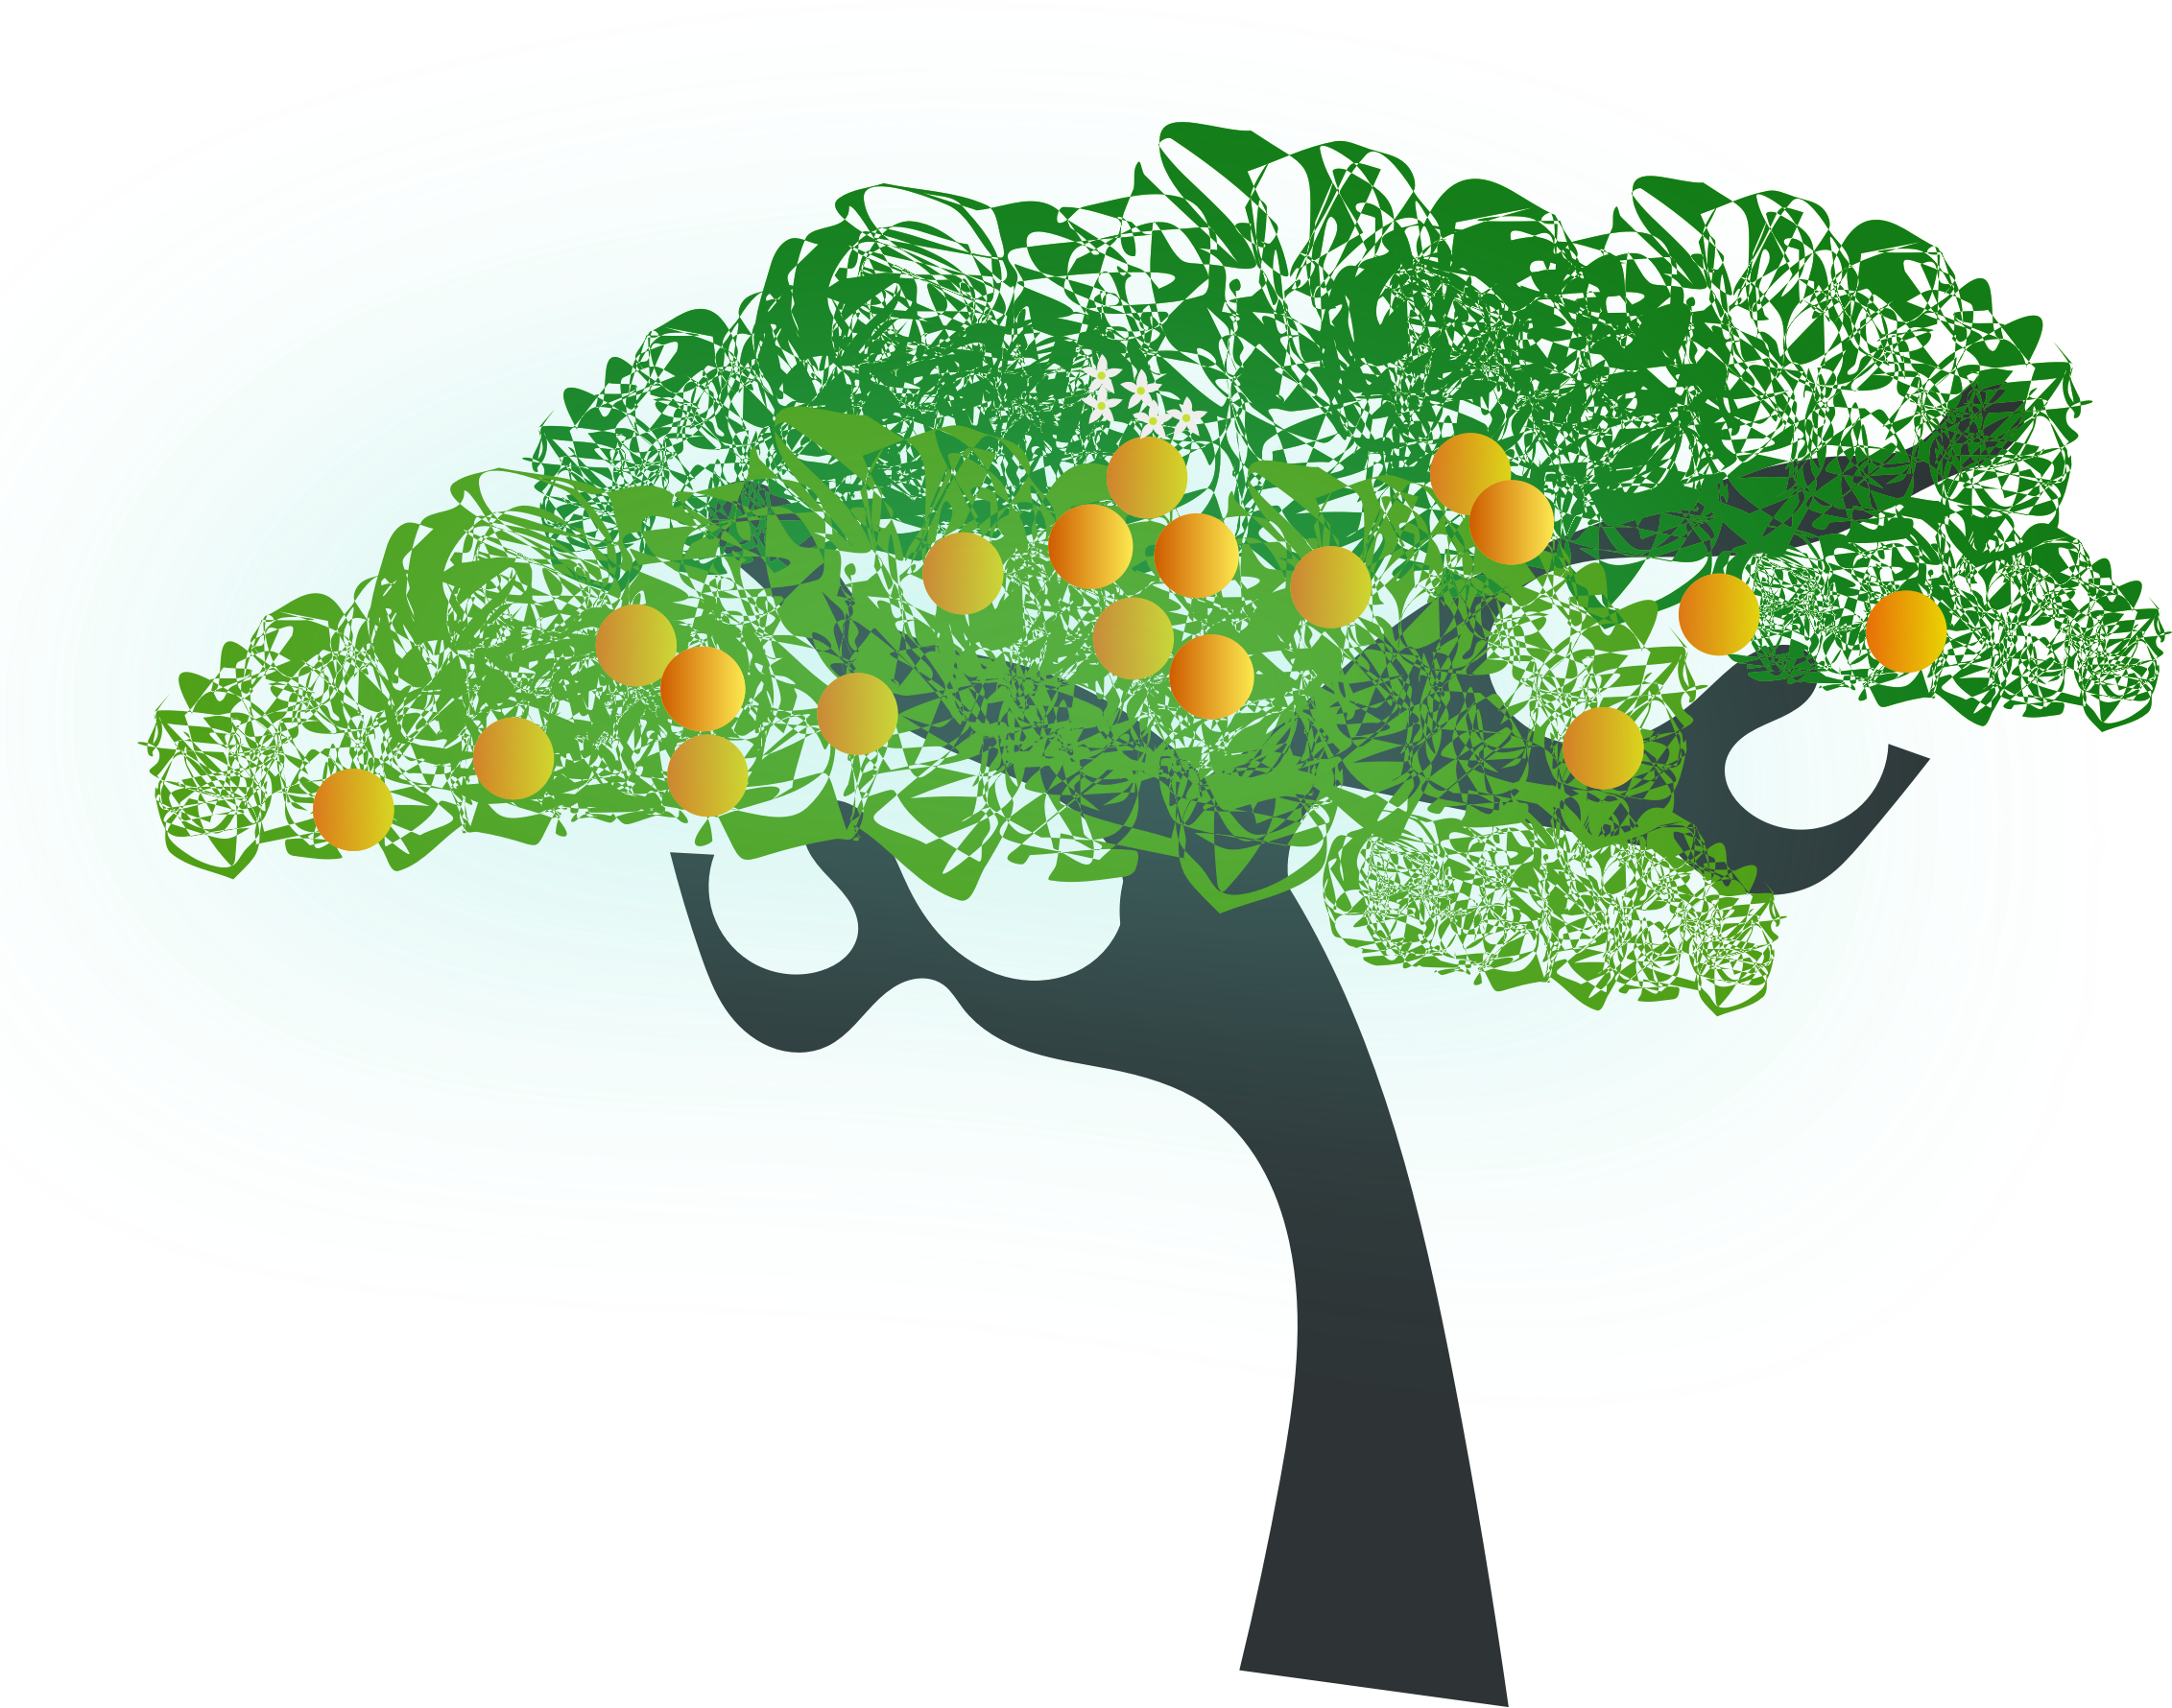 2263x1780 Tree Clipart, Suggestions For Tree Clipart, Download Tree Clipart